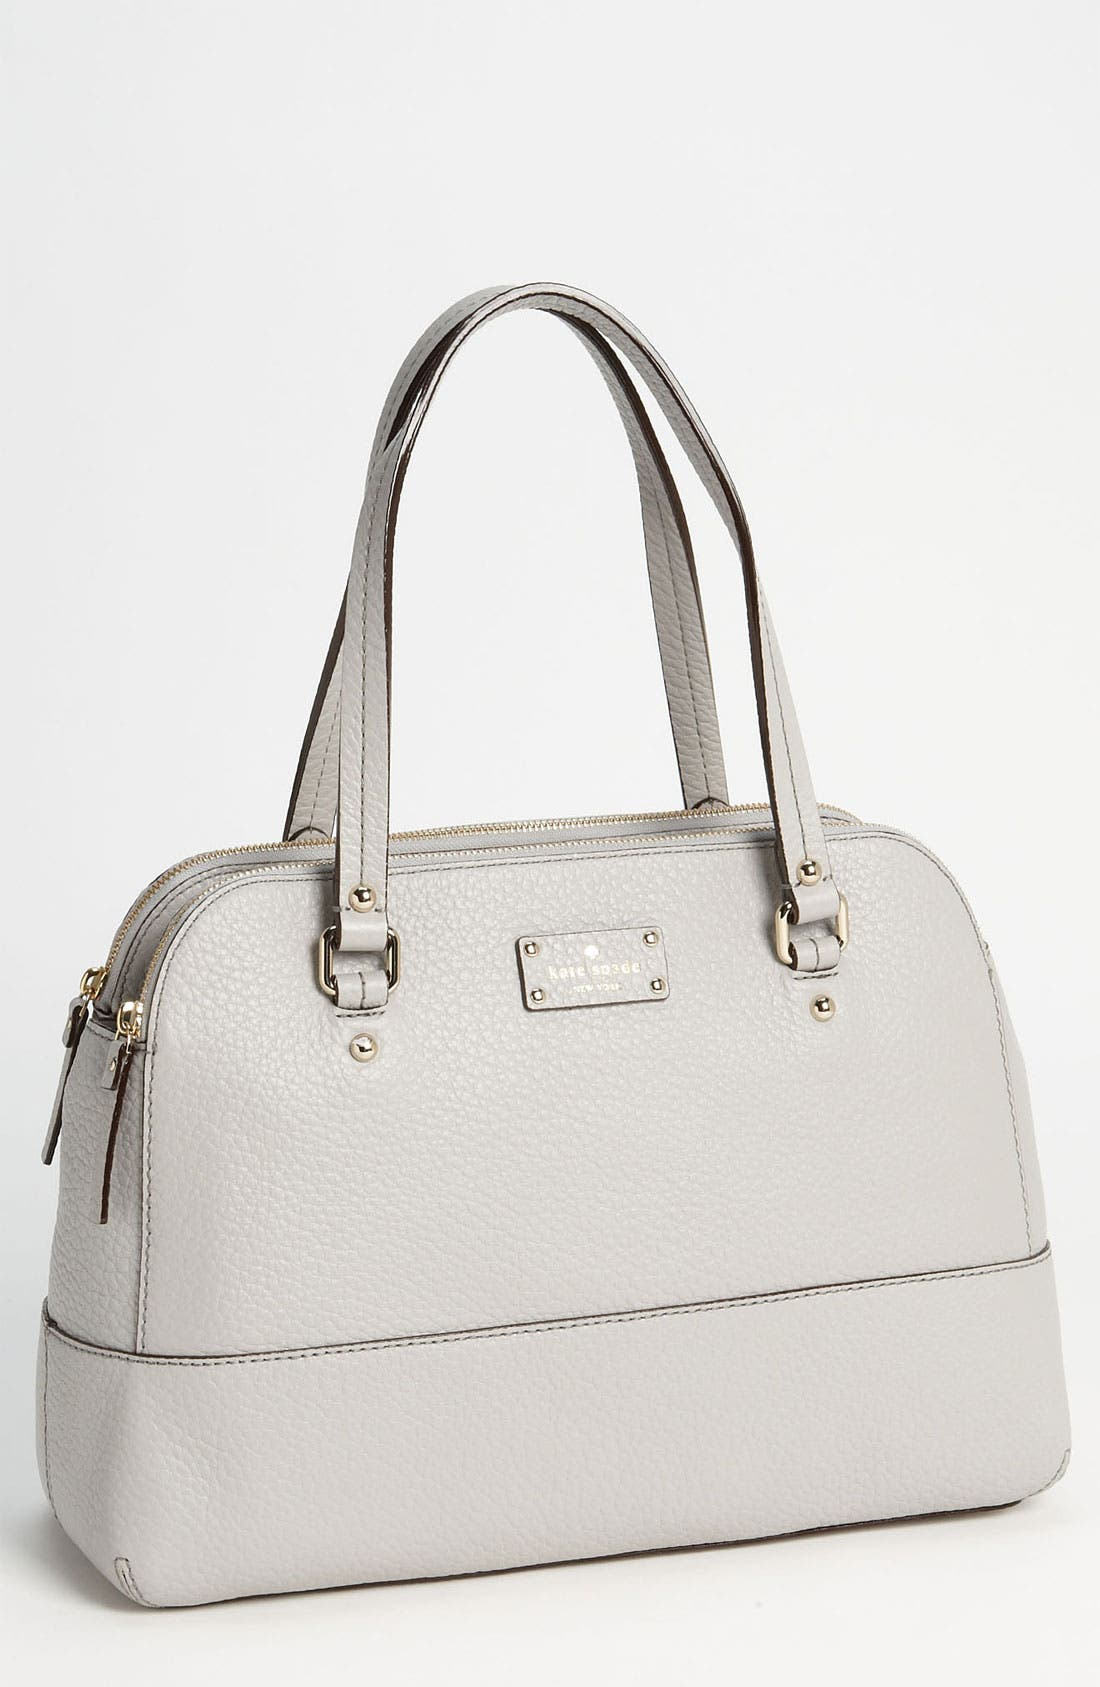 Main Image - kate spade new york 'grove court - lainey' shoulder bag